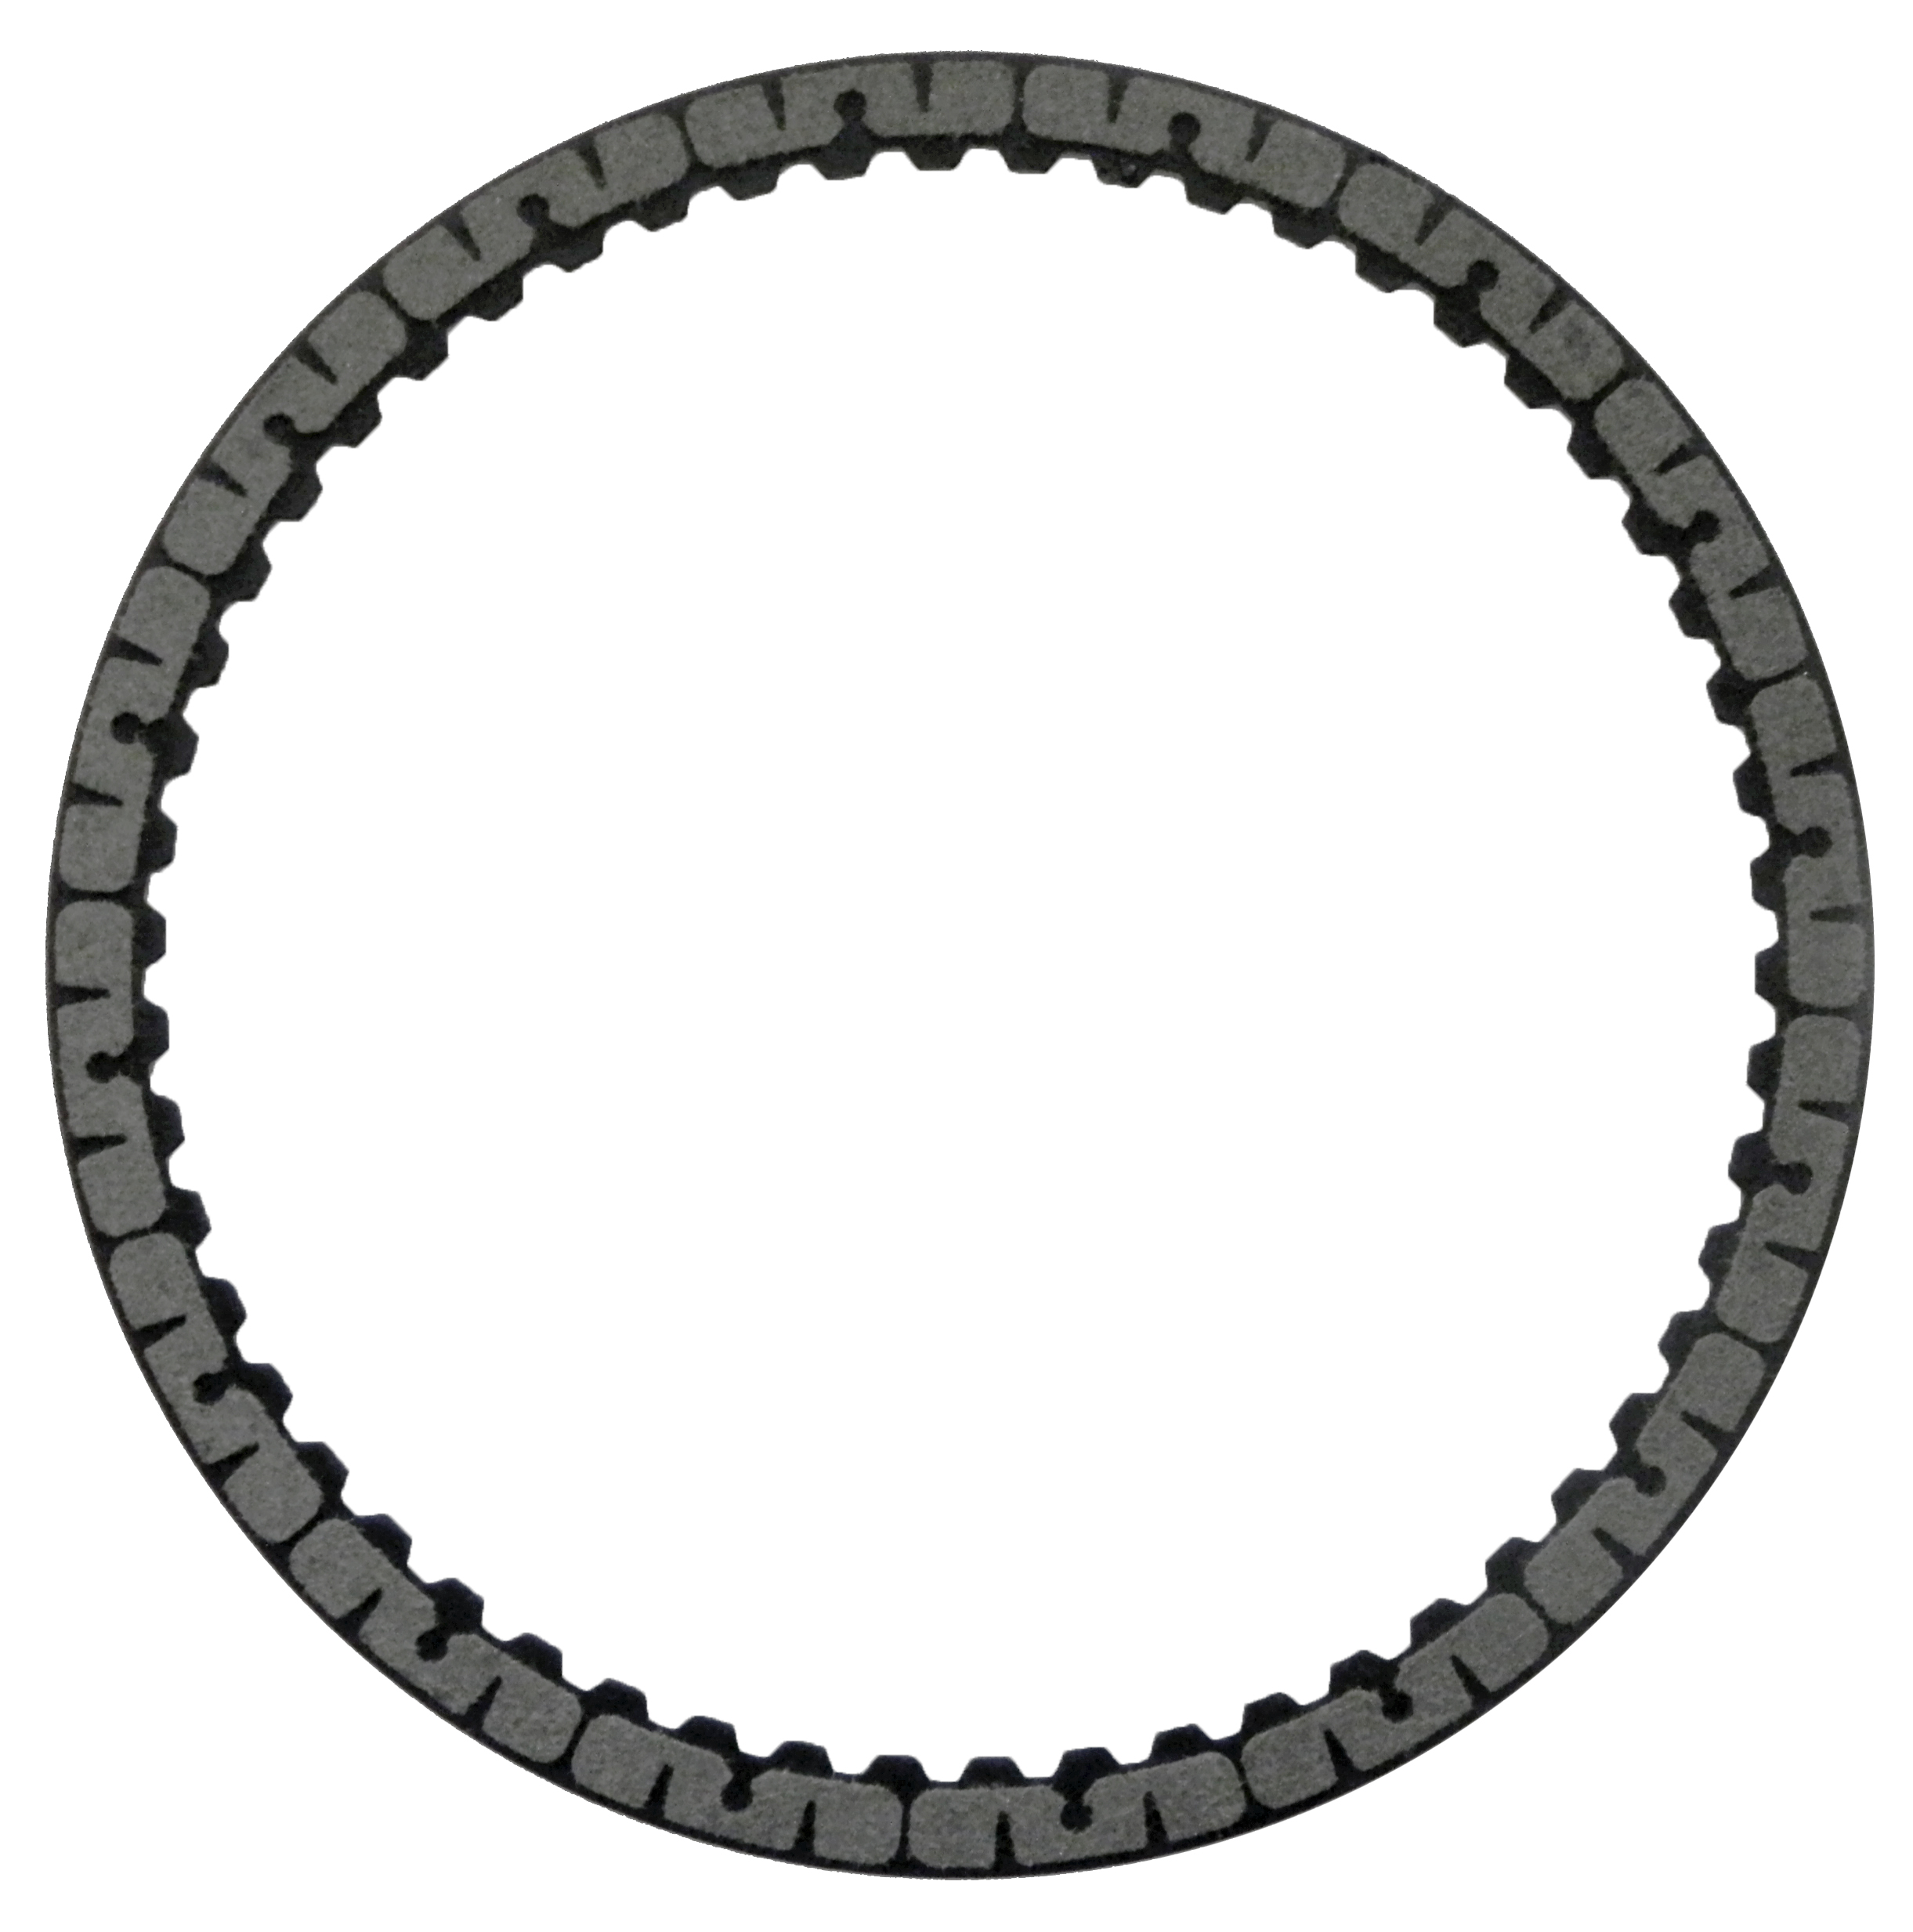 R572706 | 2001-ON Friction Clutch Plate High Energy C1 1, 2, 3, 4 M1 (Segmented) High Energy